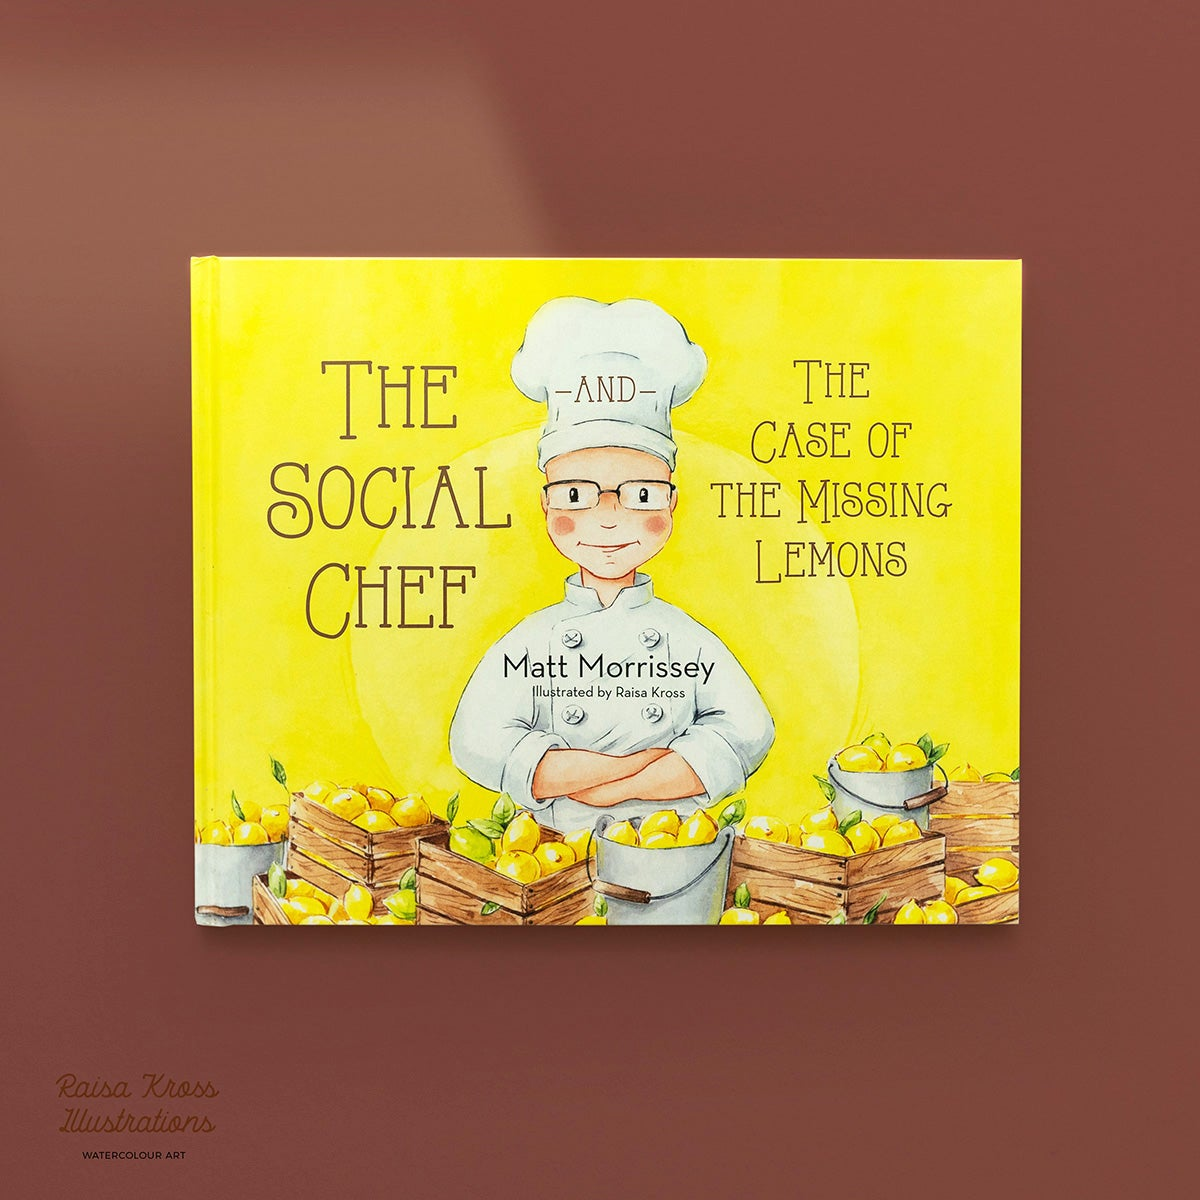 Image of The Social Chef and the Case of the Missing Lemons